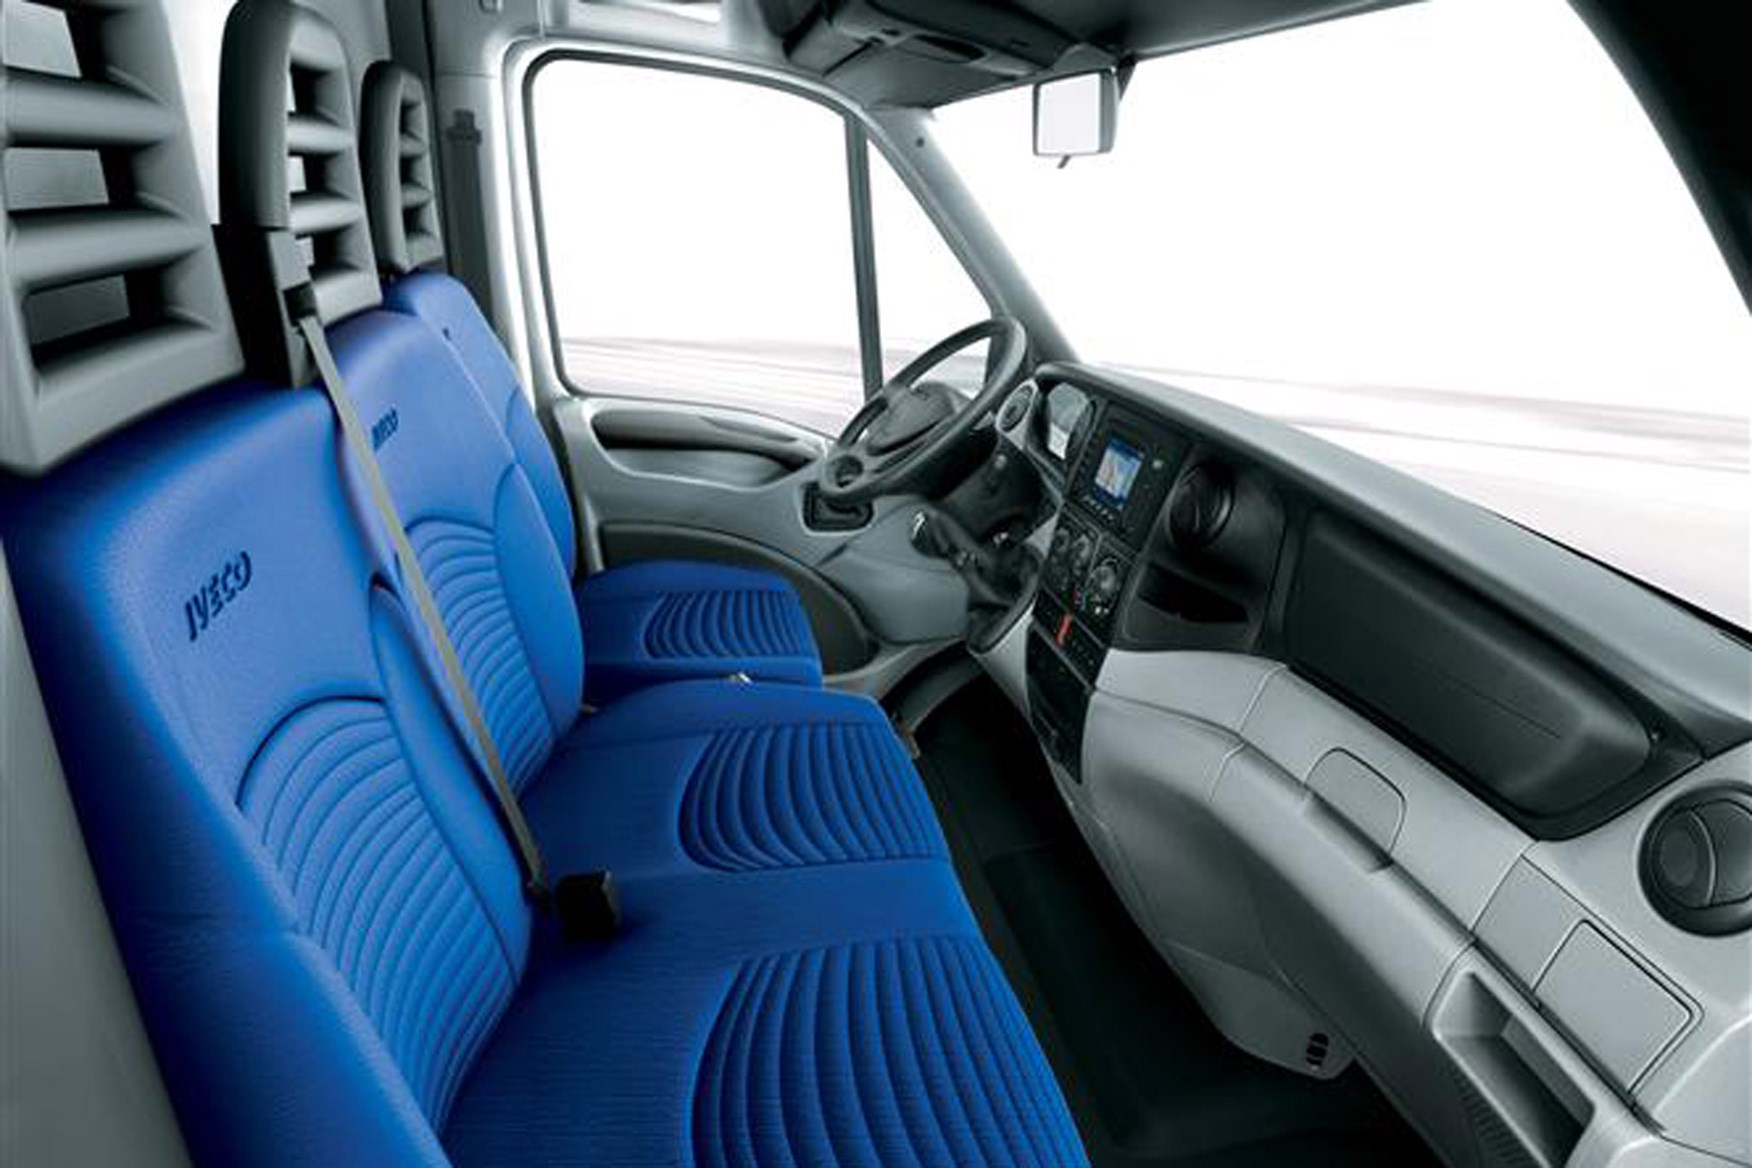 Iveco Daily 2006-2009 review on Parkers Vans - cabin, interior